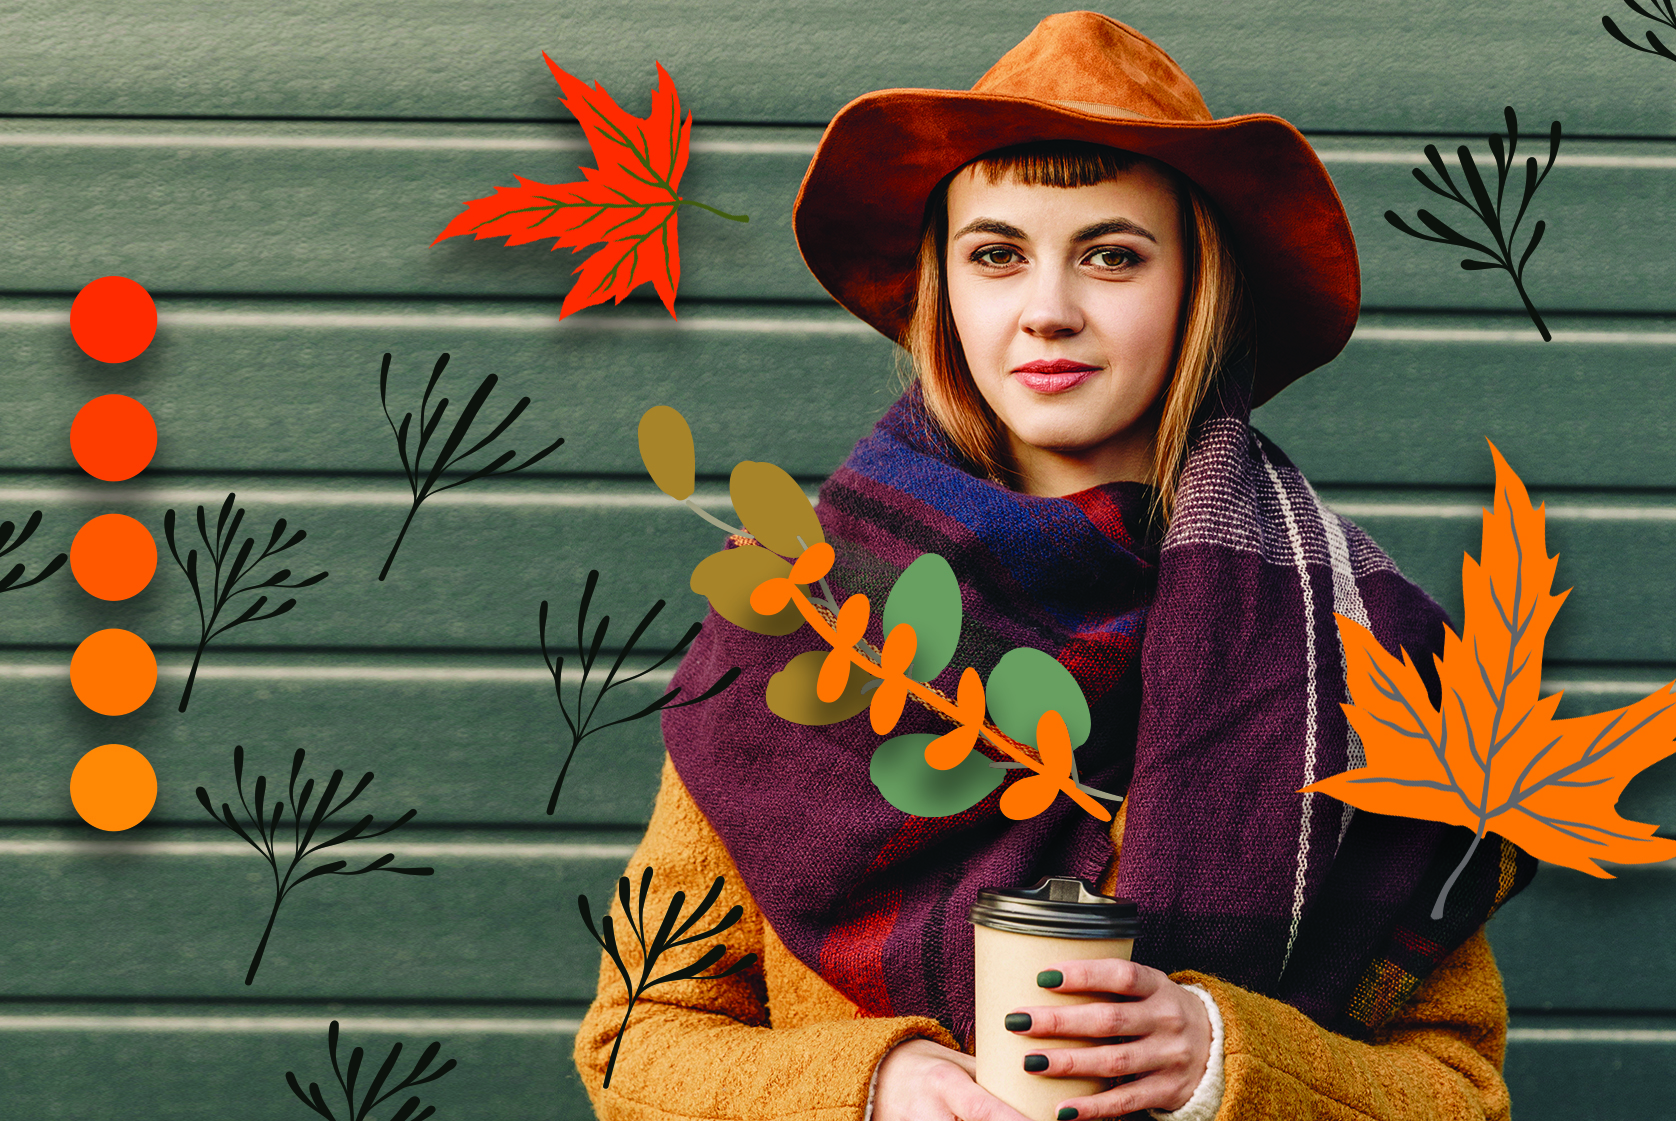 Fall photo with leaves and girl with hat